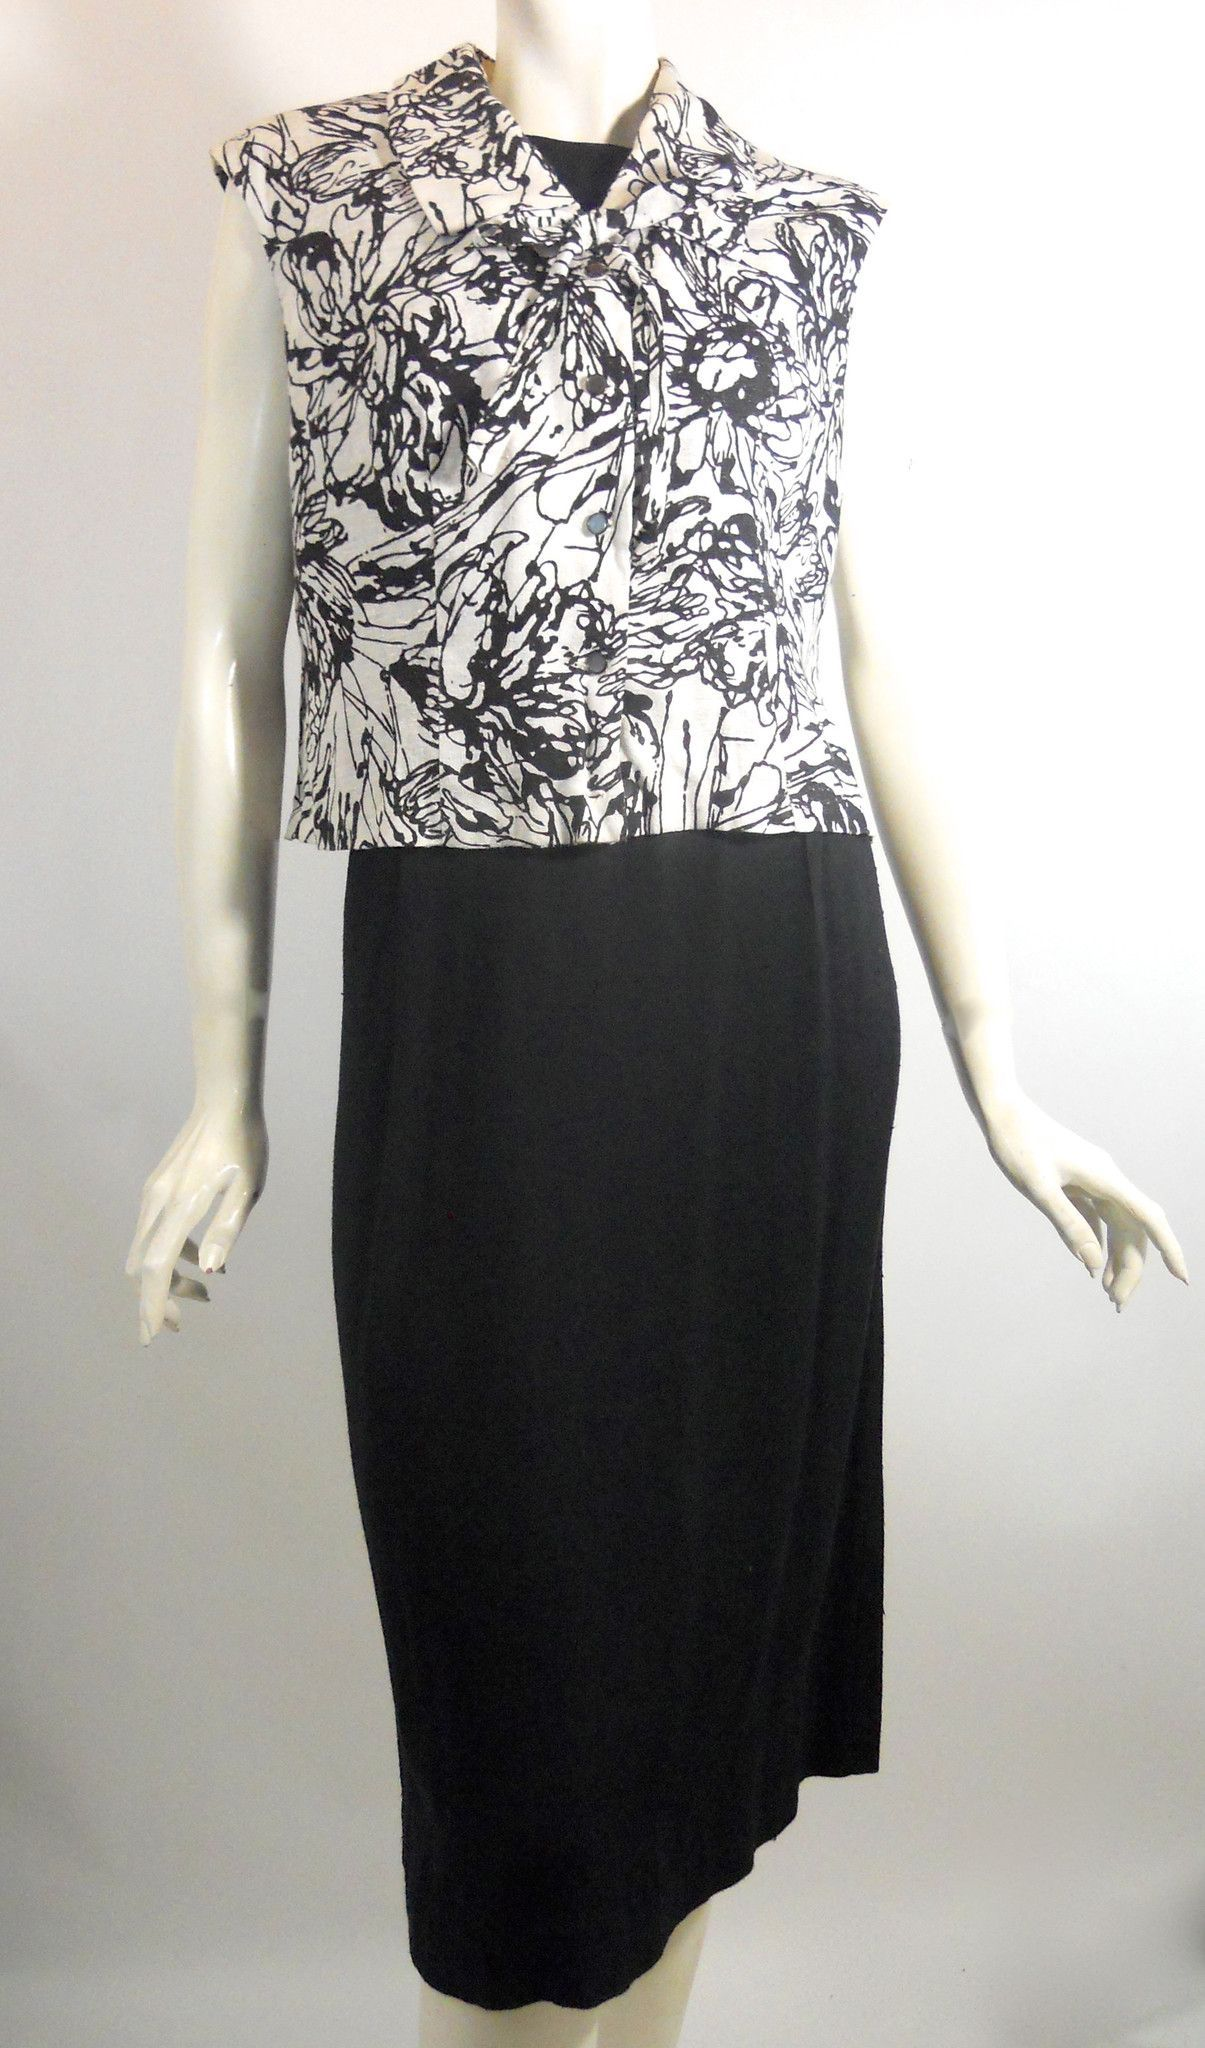 Linen Weave Rayon Little Black Dress with Overblouse circa 1960s